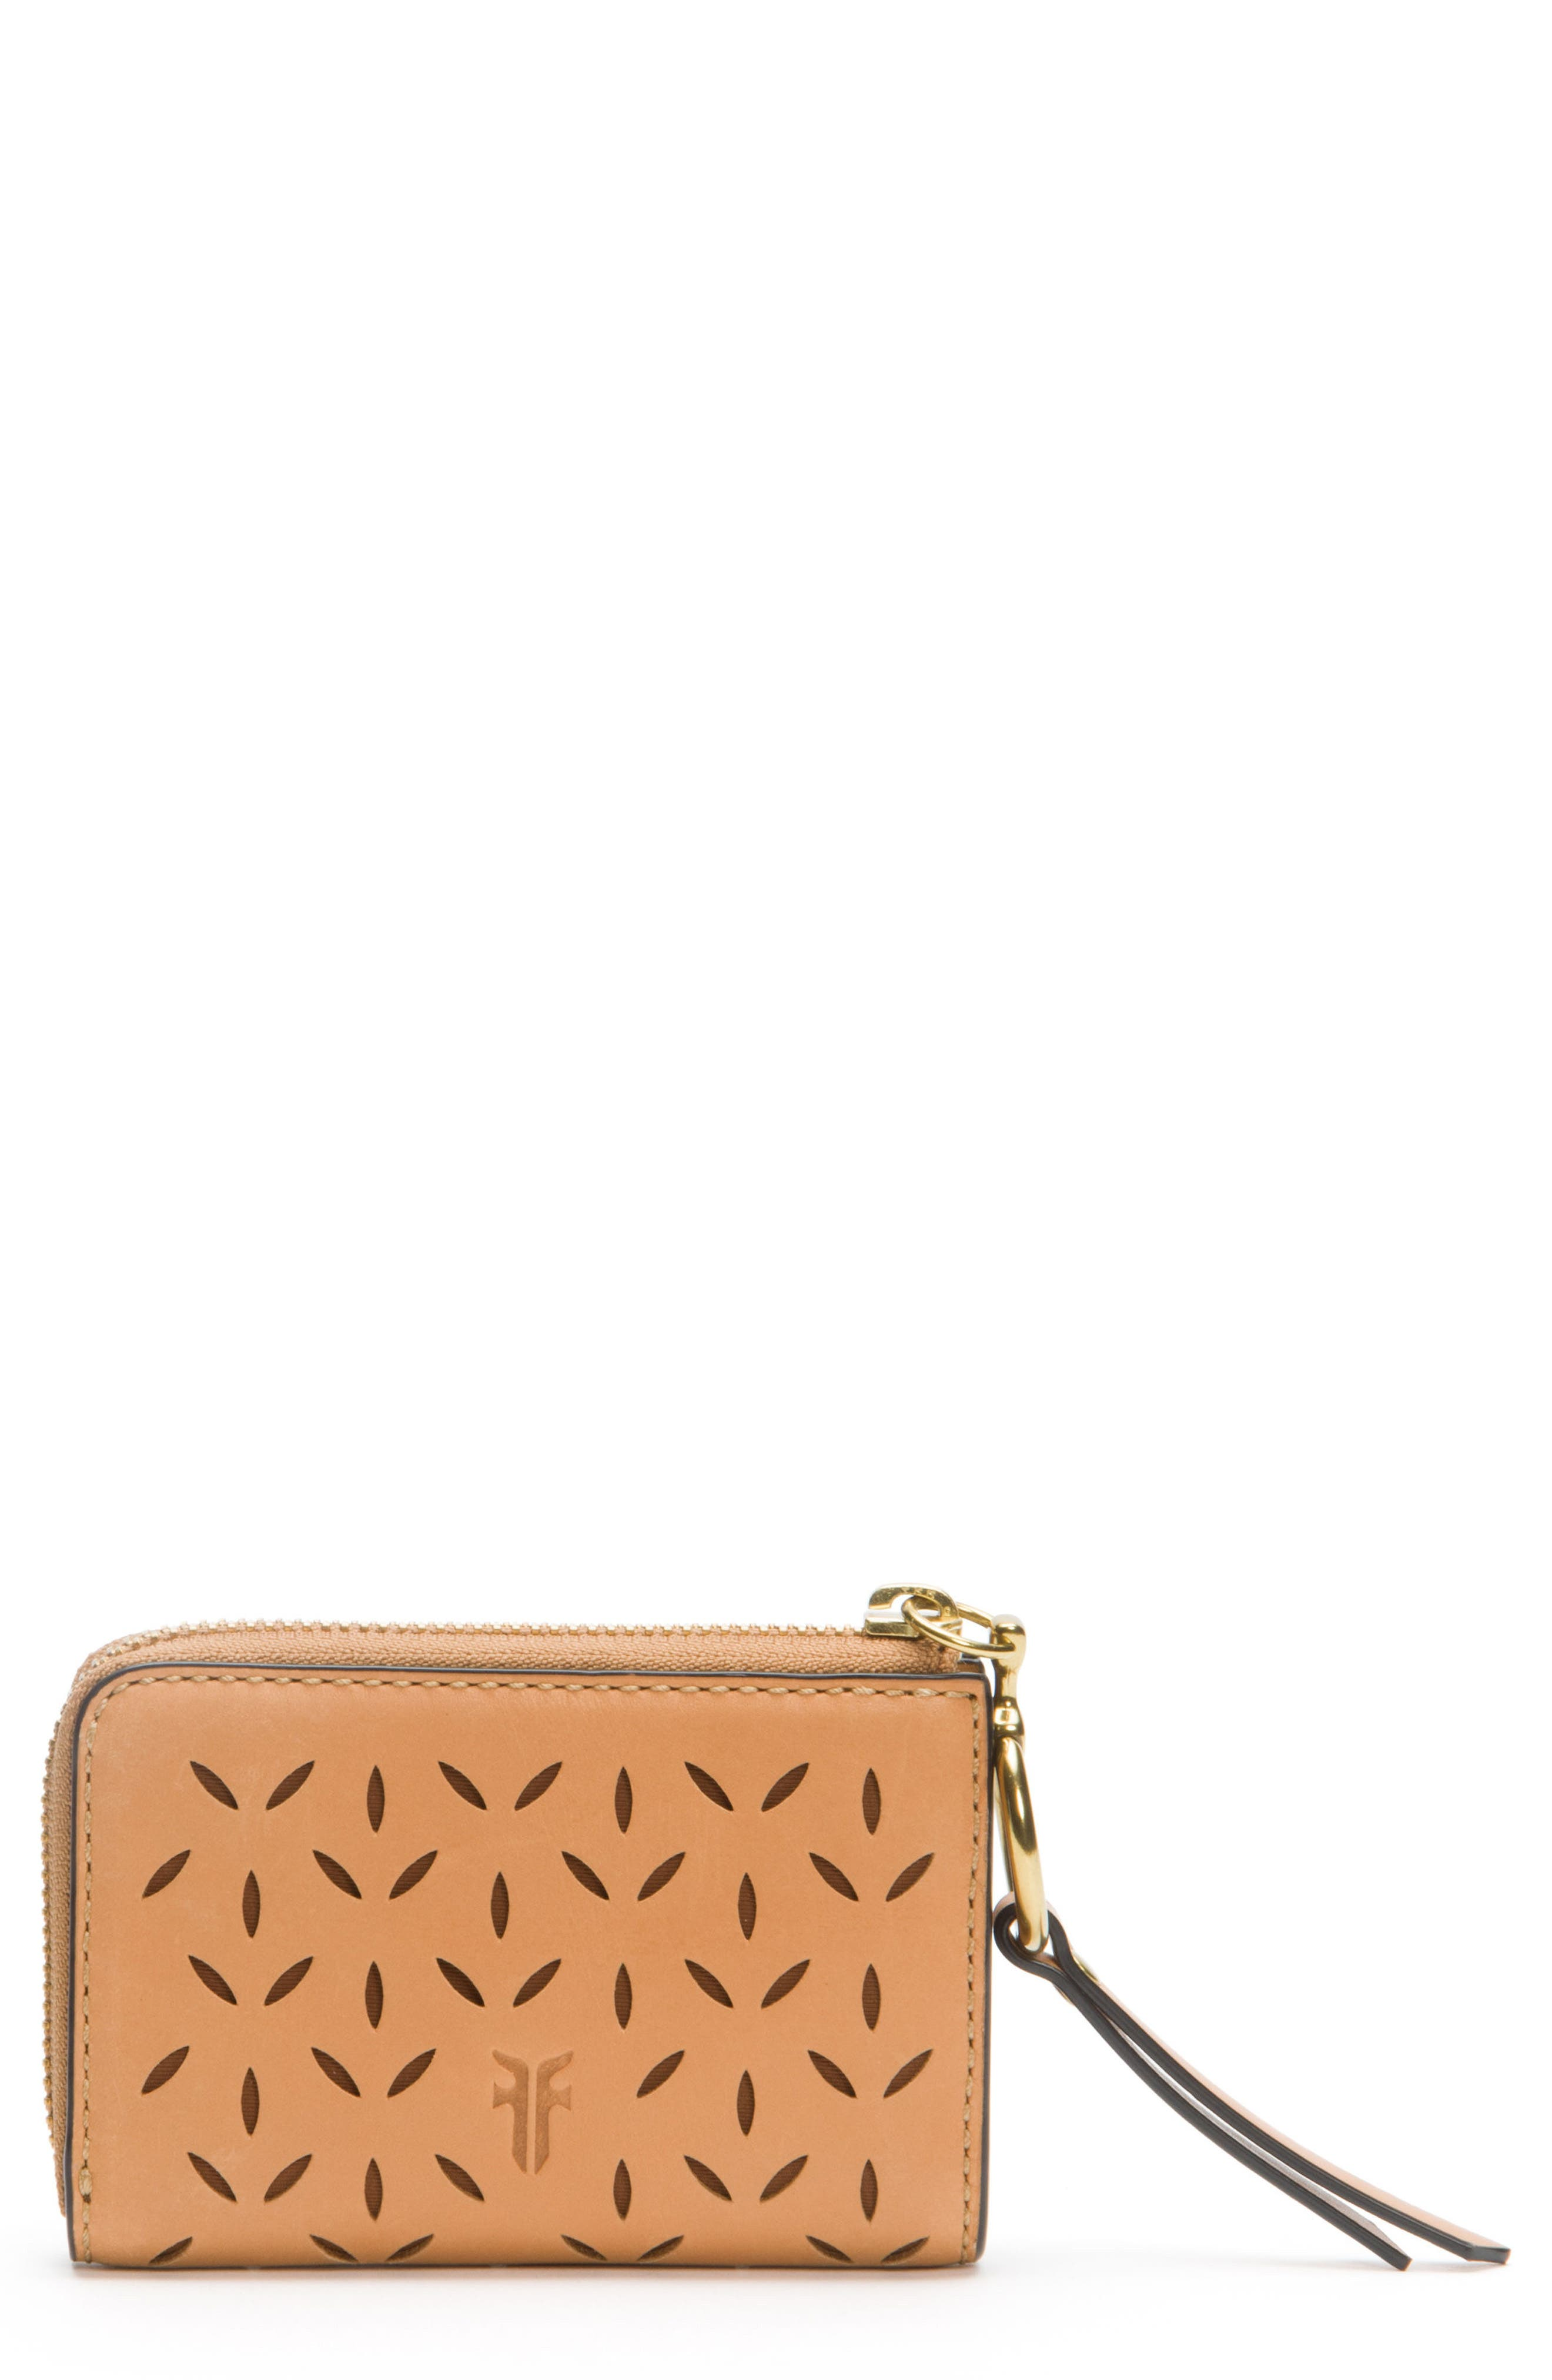 Ilana Small Perforated Leather Zip Wallet,                         Main,                         color, Light Tan